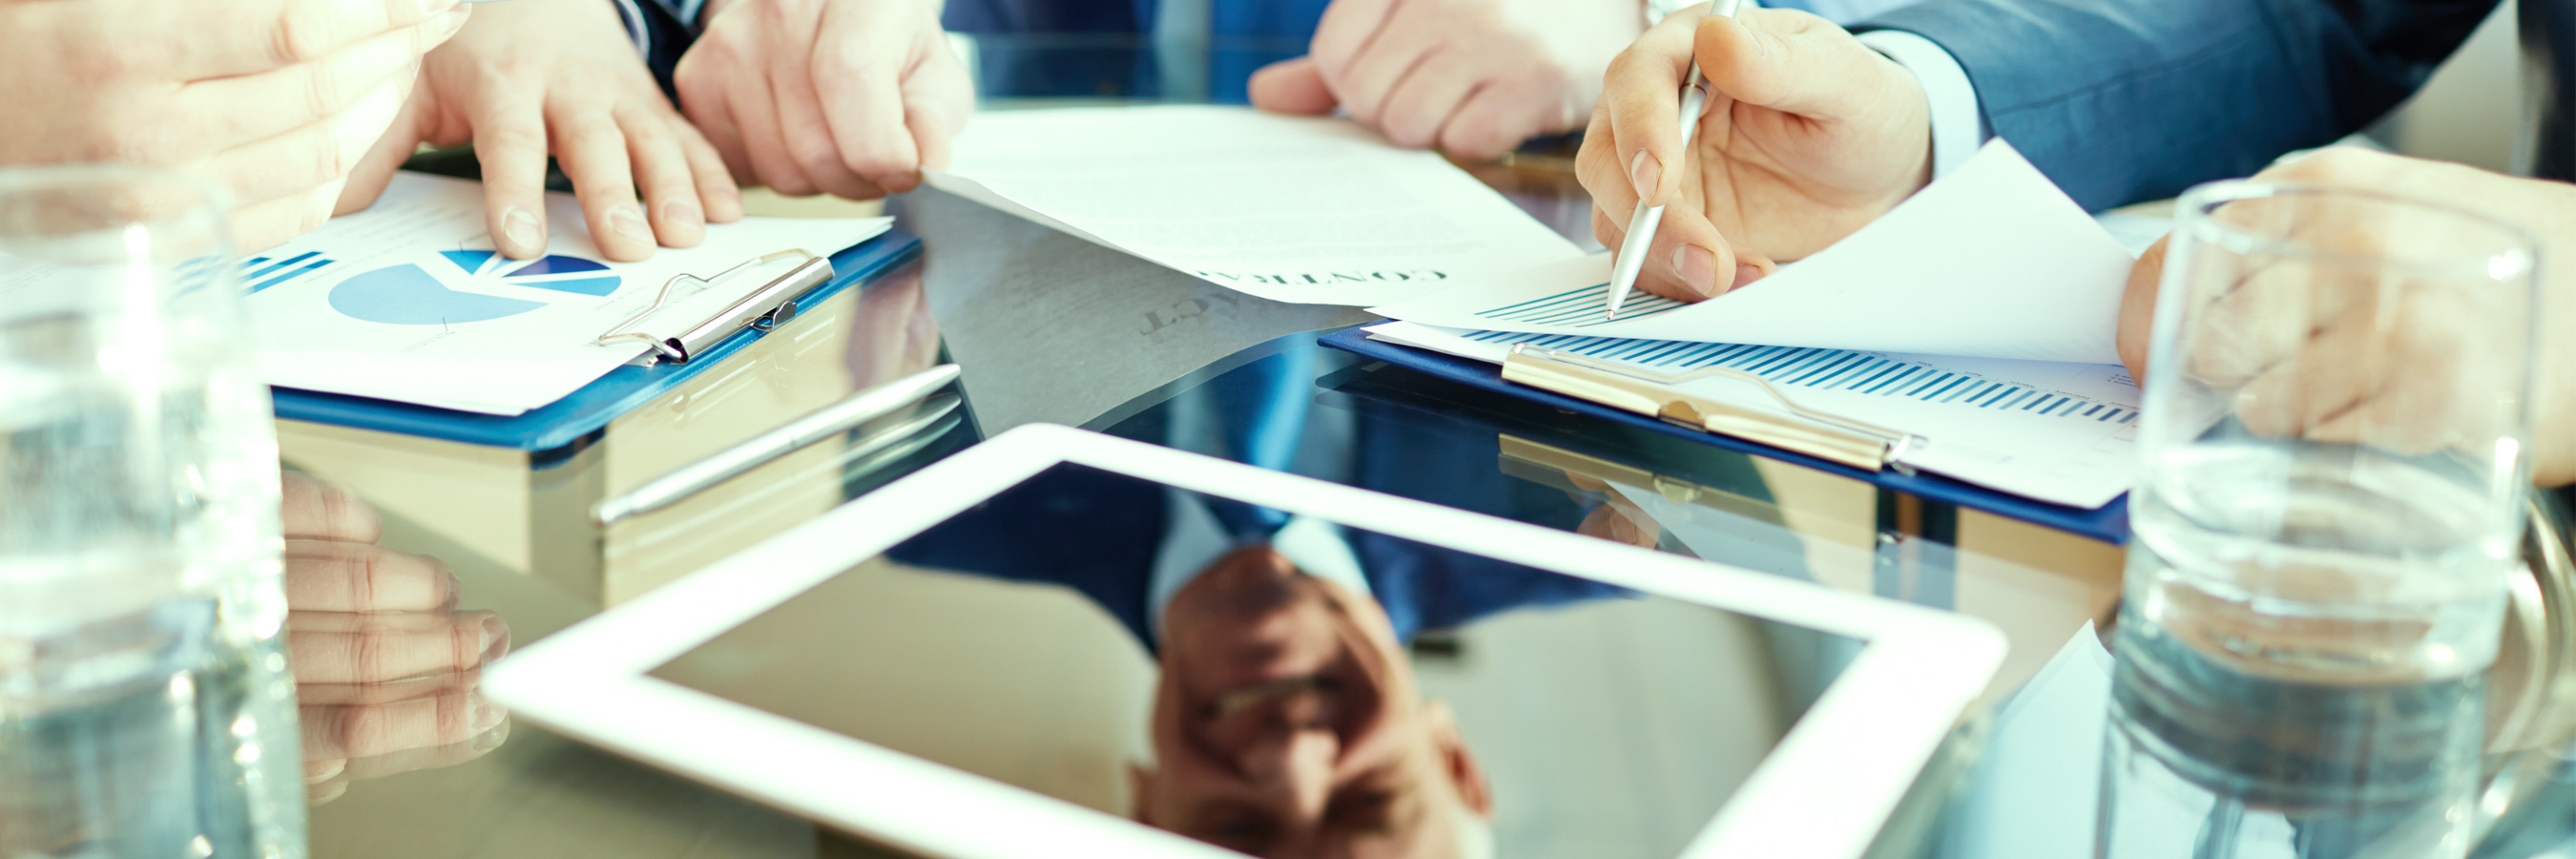 Importance of Professional Accountancy Services for Small Businesses in London, UK